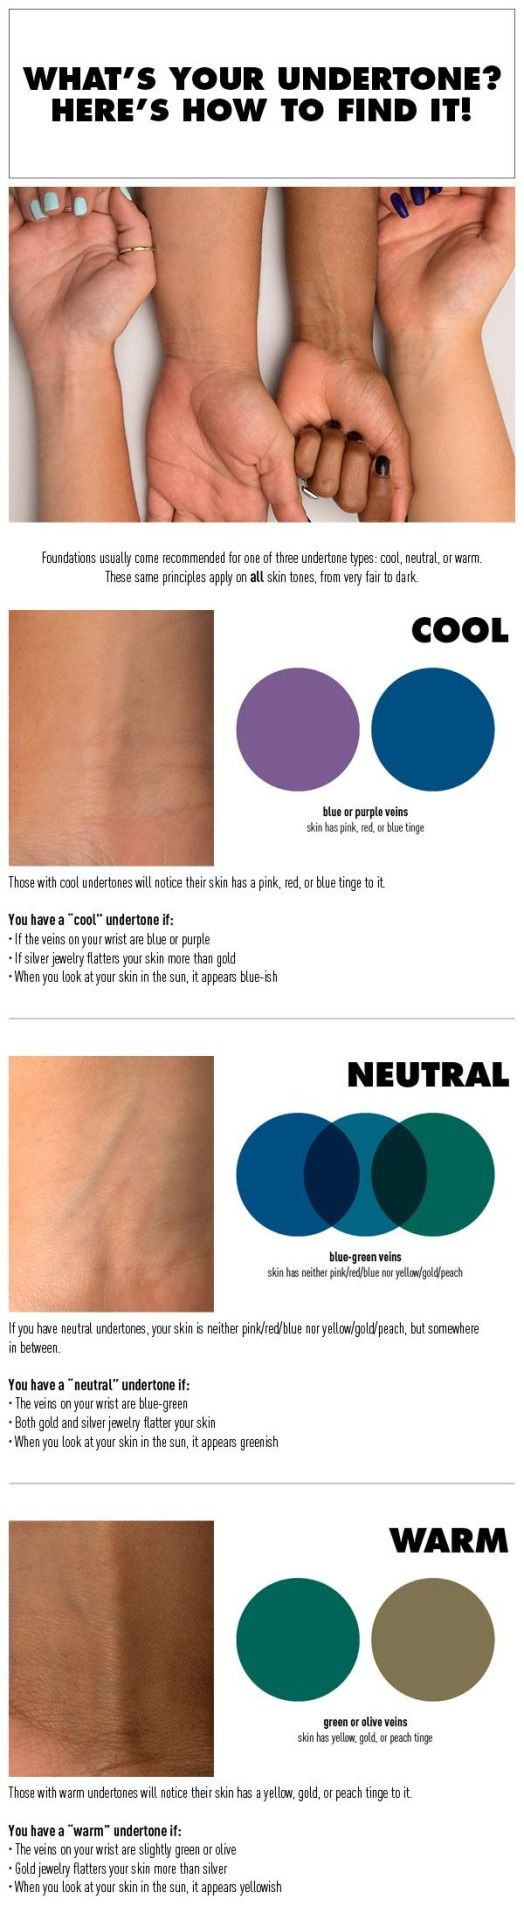 How to find your undertone Via